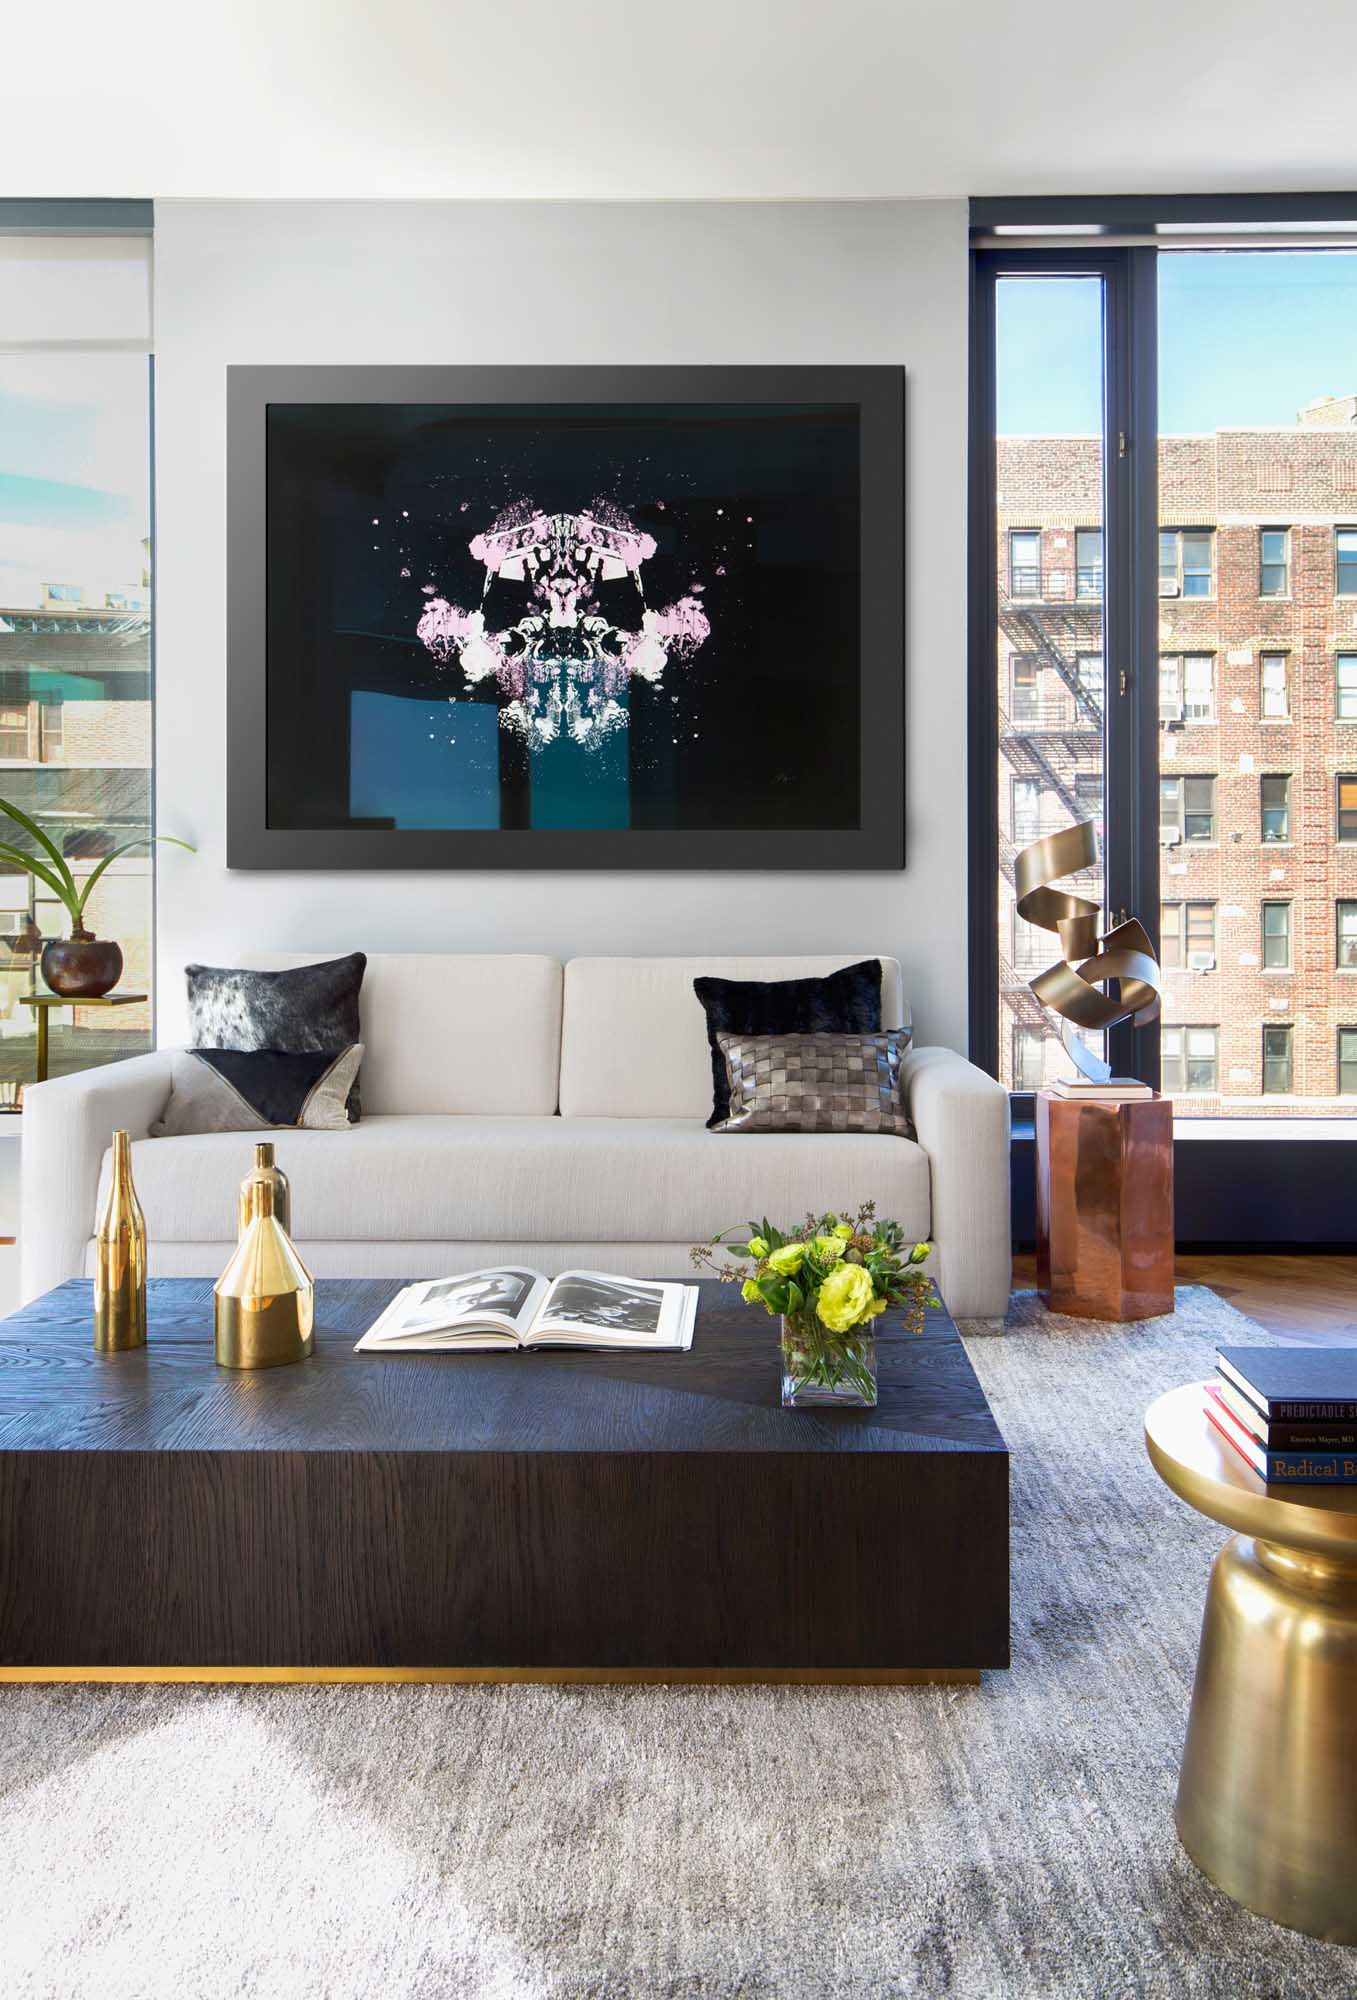 Modern design living room with gray carpet, large wooden center table, wide windows overlooking the city